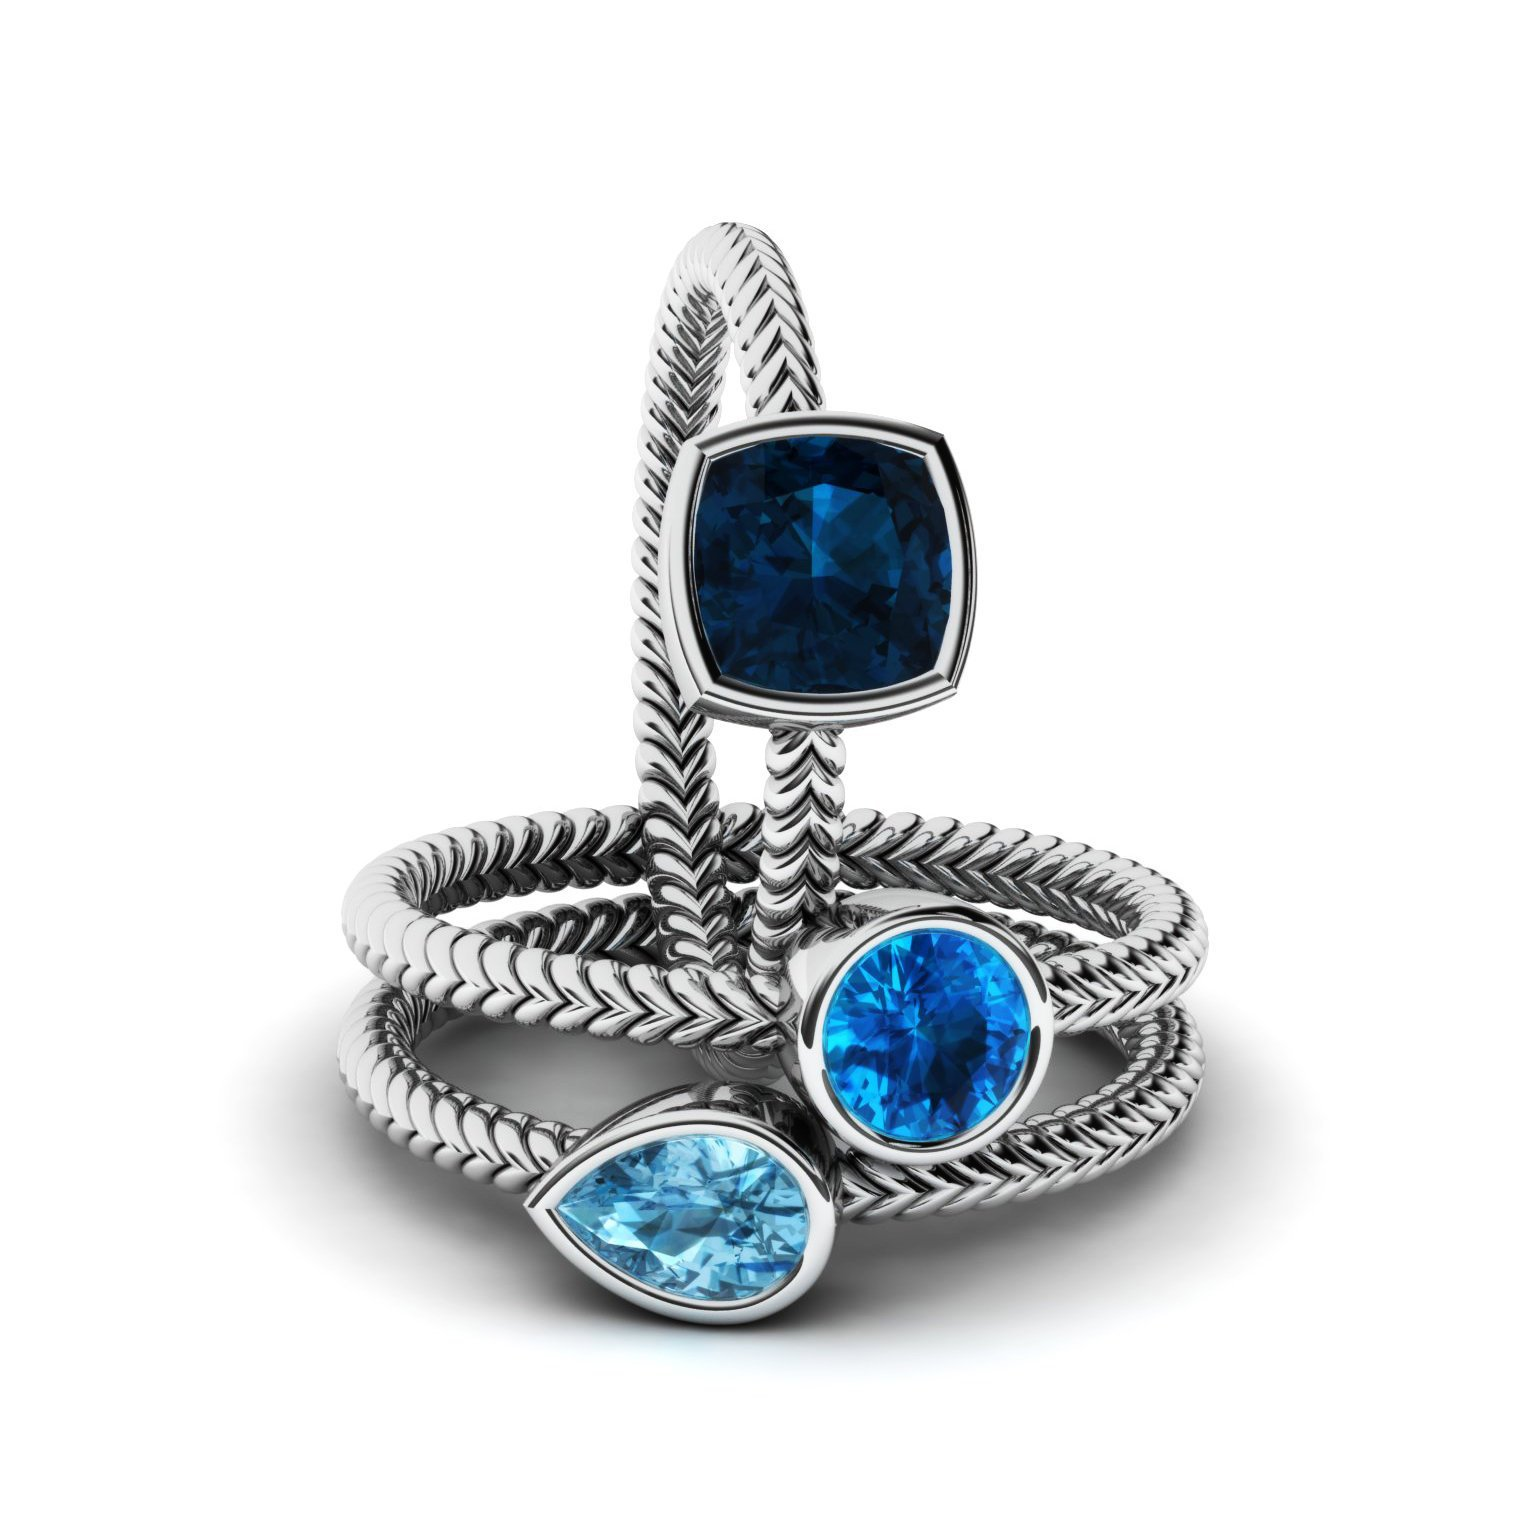 Ring-Sets Jewelry Wedding-Band Natural-Stone Sapphire 925-Silver Women AAAA Zircon Cz